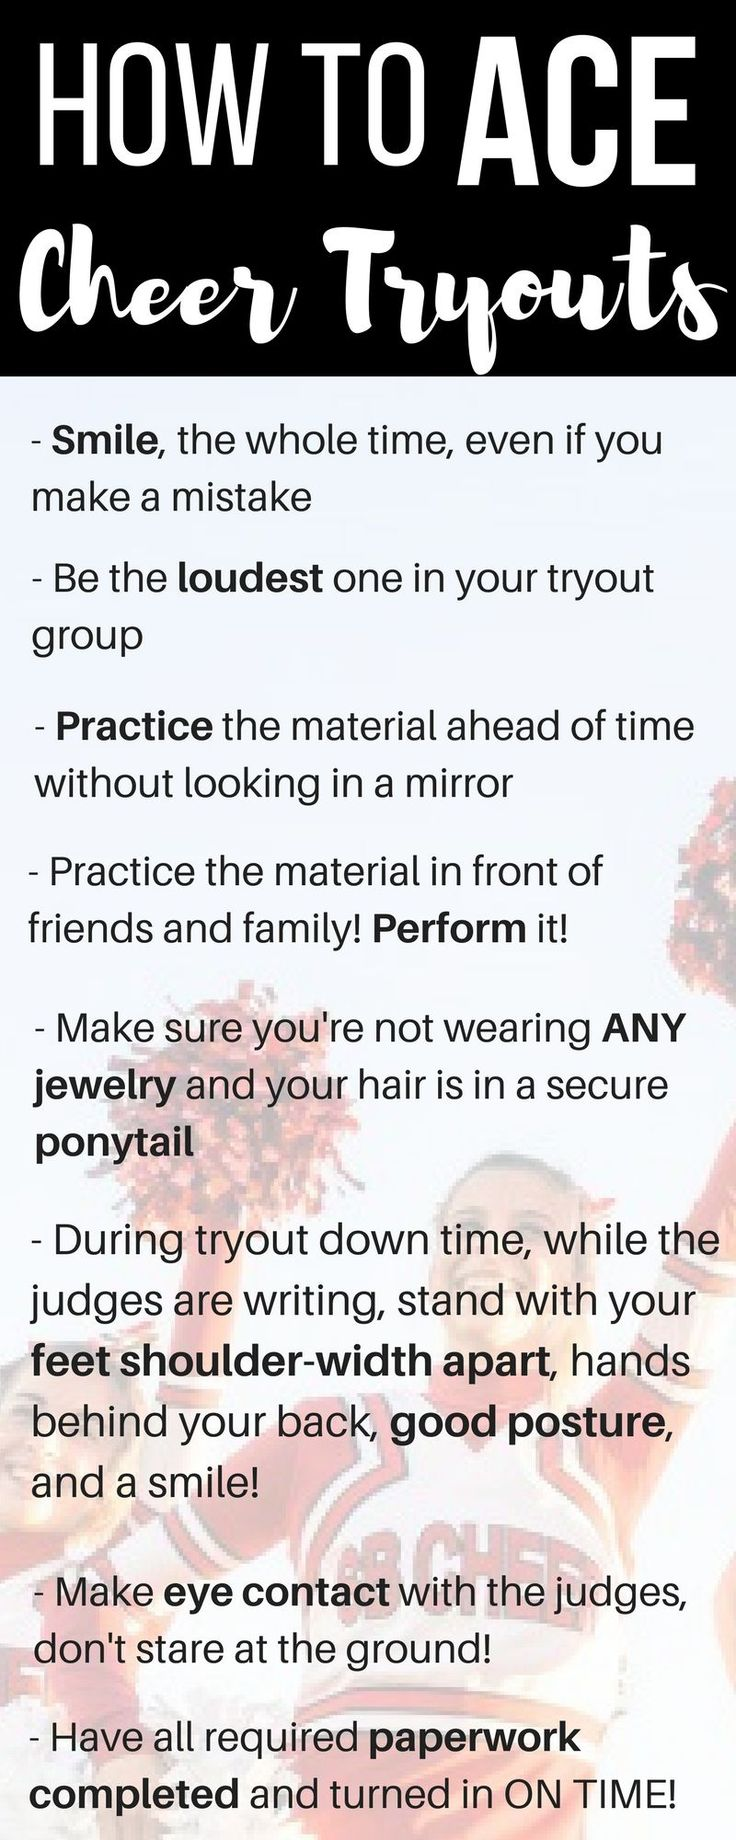 Making the cheerleading squad. Cheer tryouts. Cheer coach advice. How to be a cheerleader.